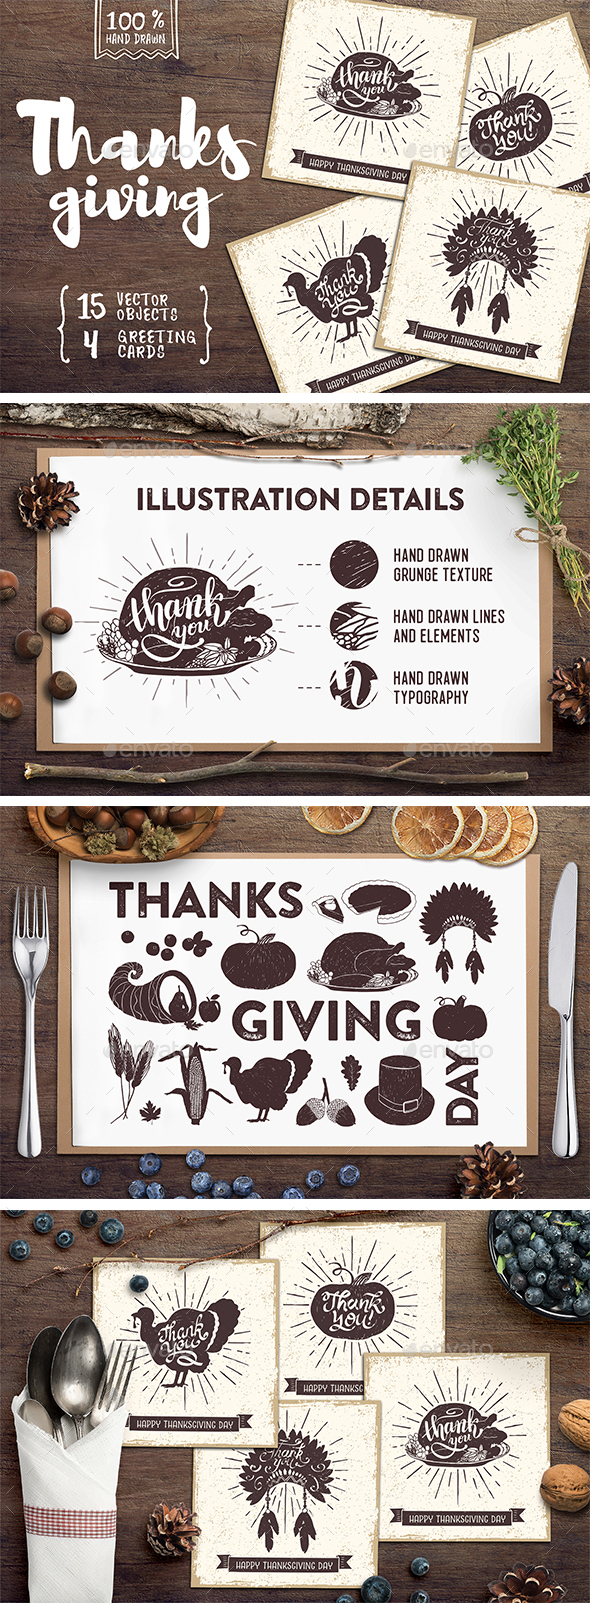 Thanksgiving. 15 Hand Drawn Objects and 4 Greeting Cards